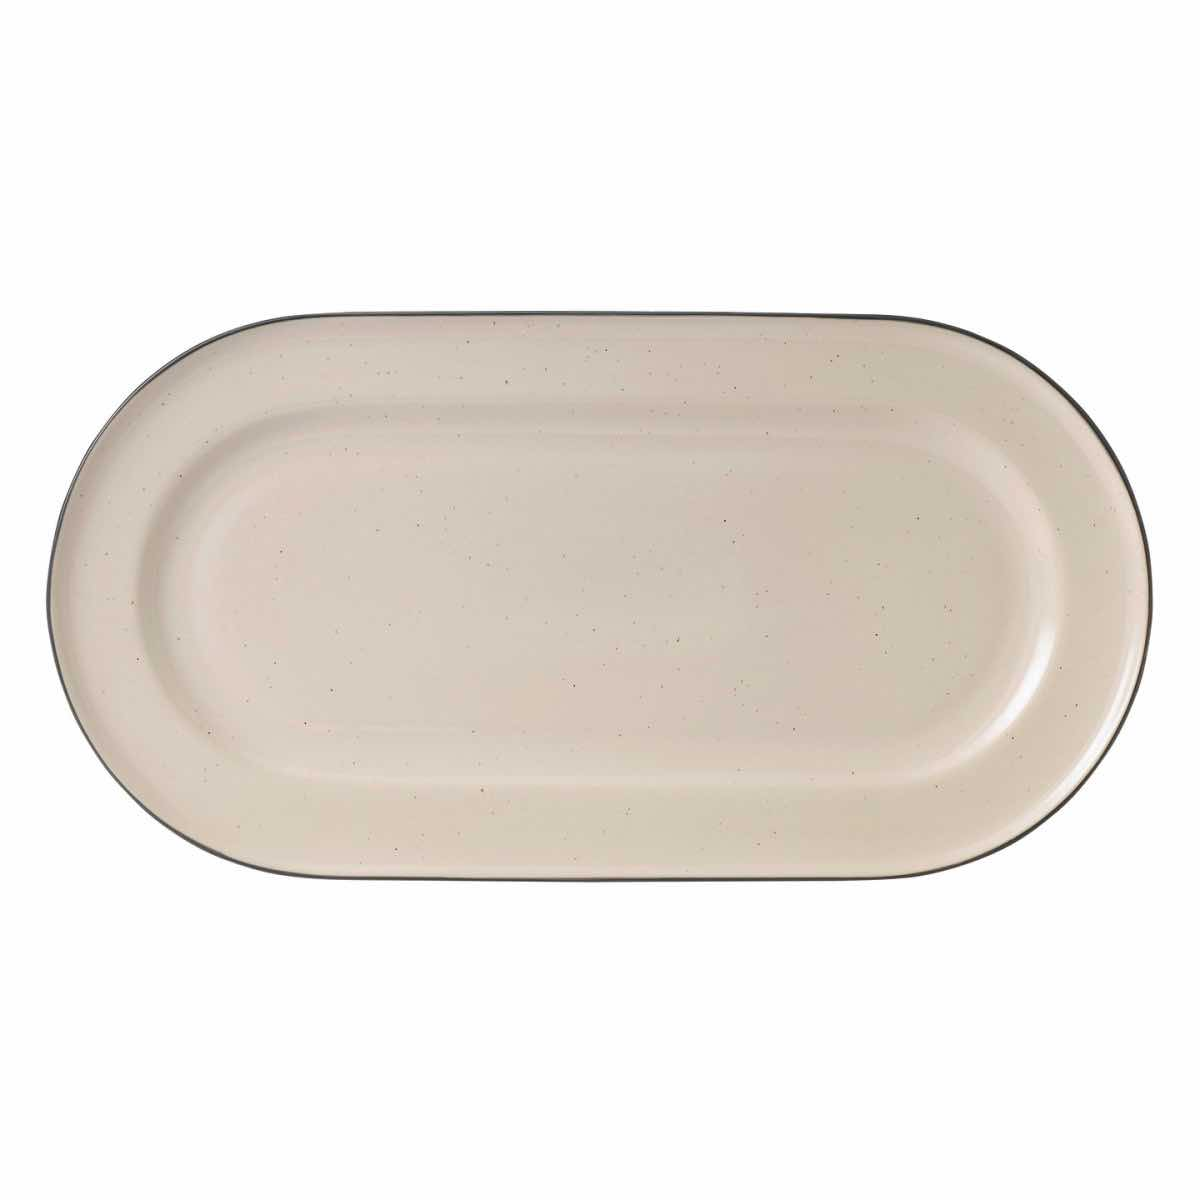 Gordon Ramsay Union Street Café Serving Platter | Cream